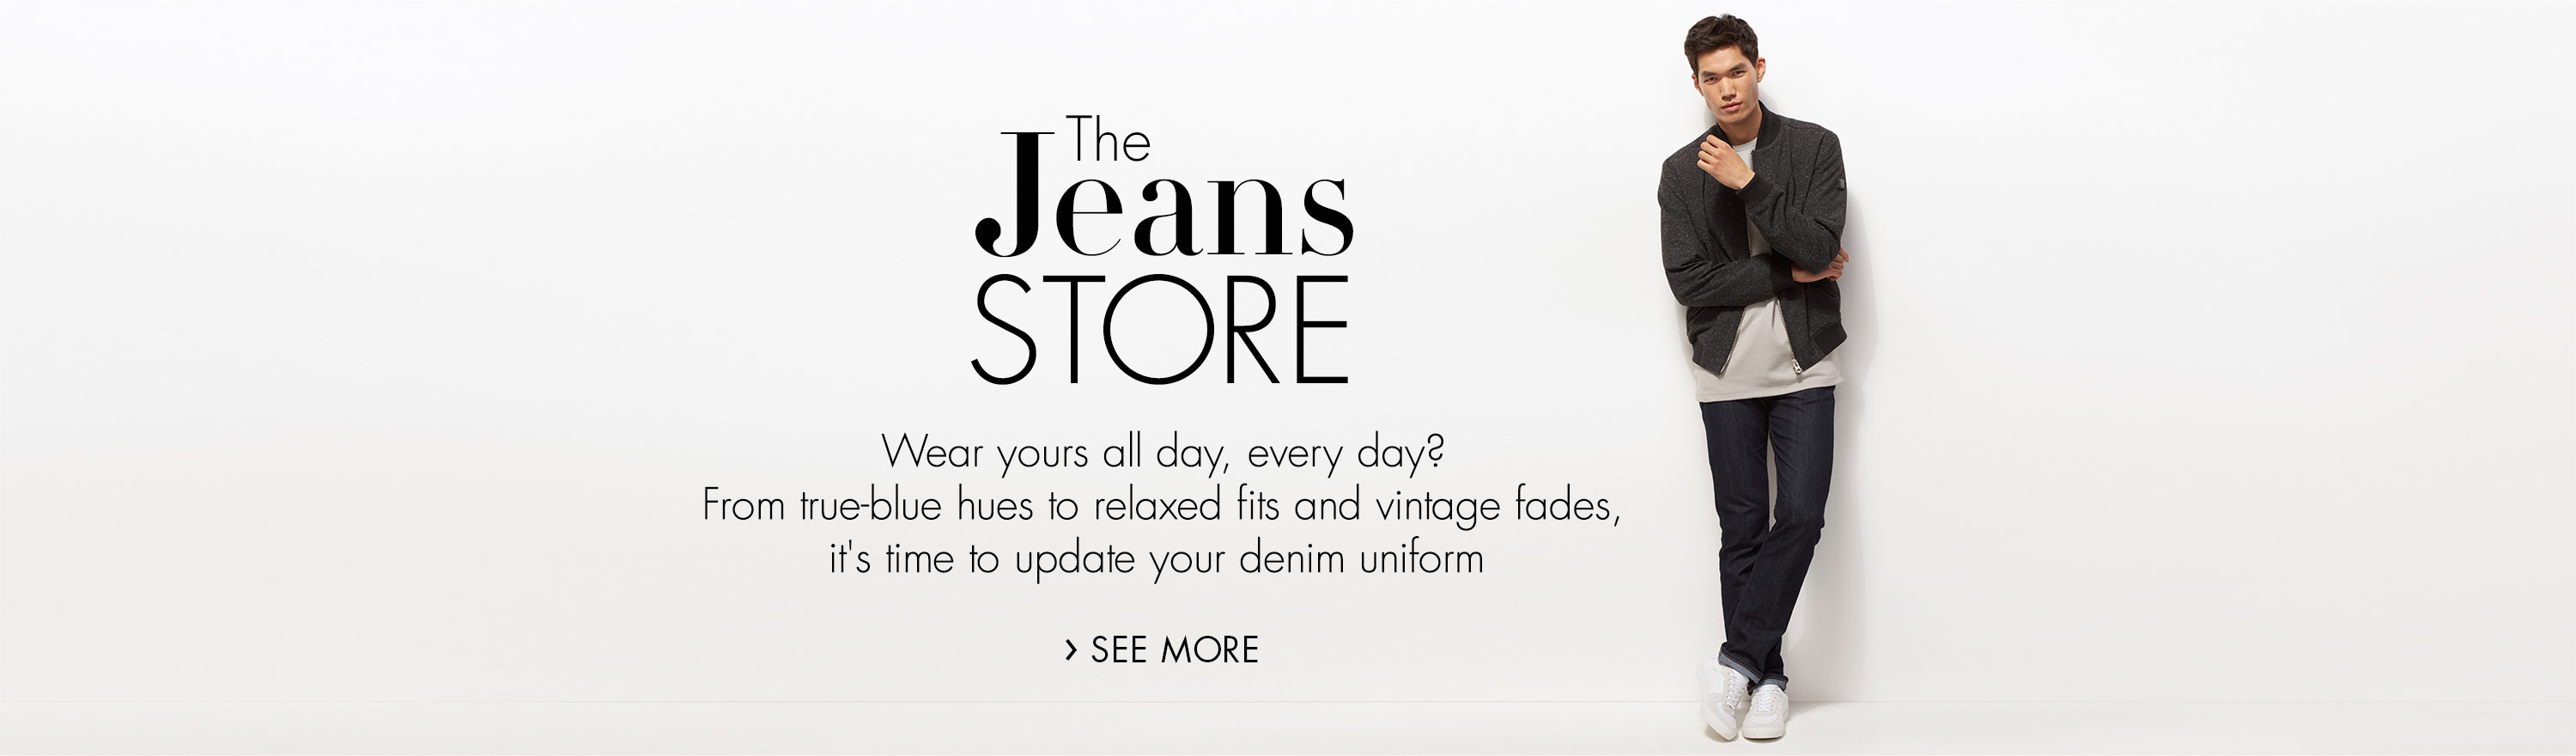 The Jeans Store for Men